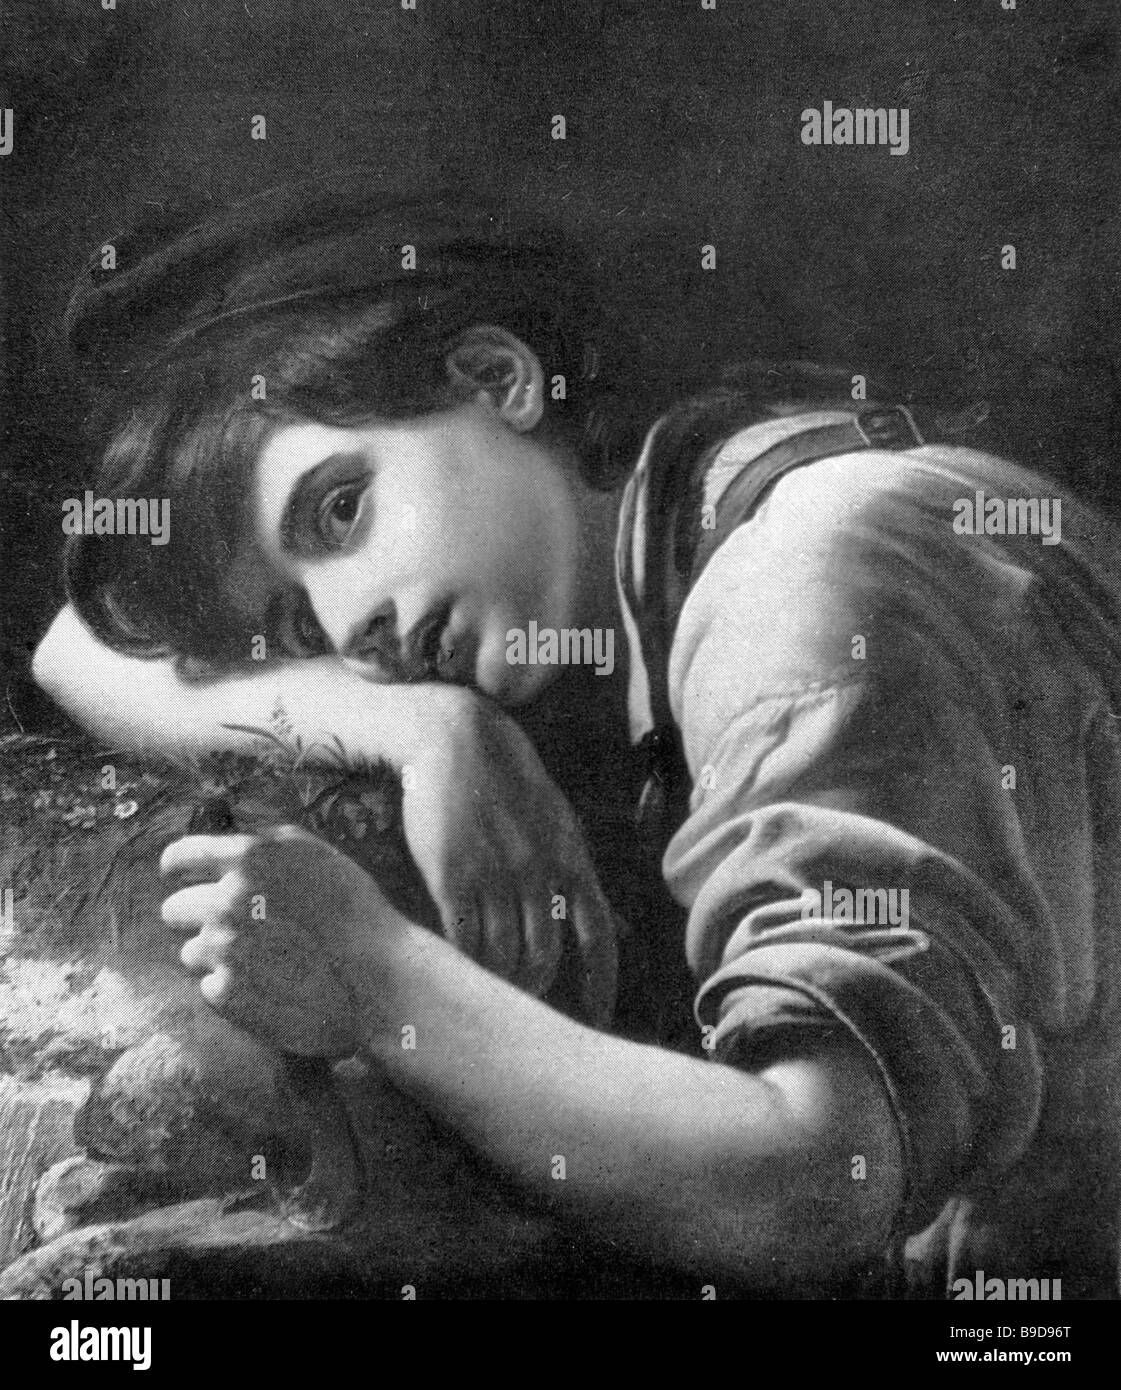 A copy of artist Orest Kiprensky s 1783 1836 picture A Young Gardener from the collection of the State Russian Museum - Stock Image